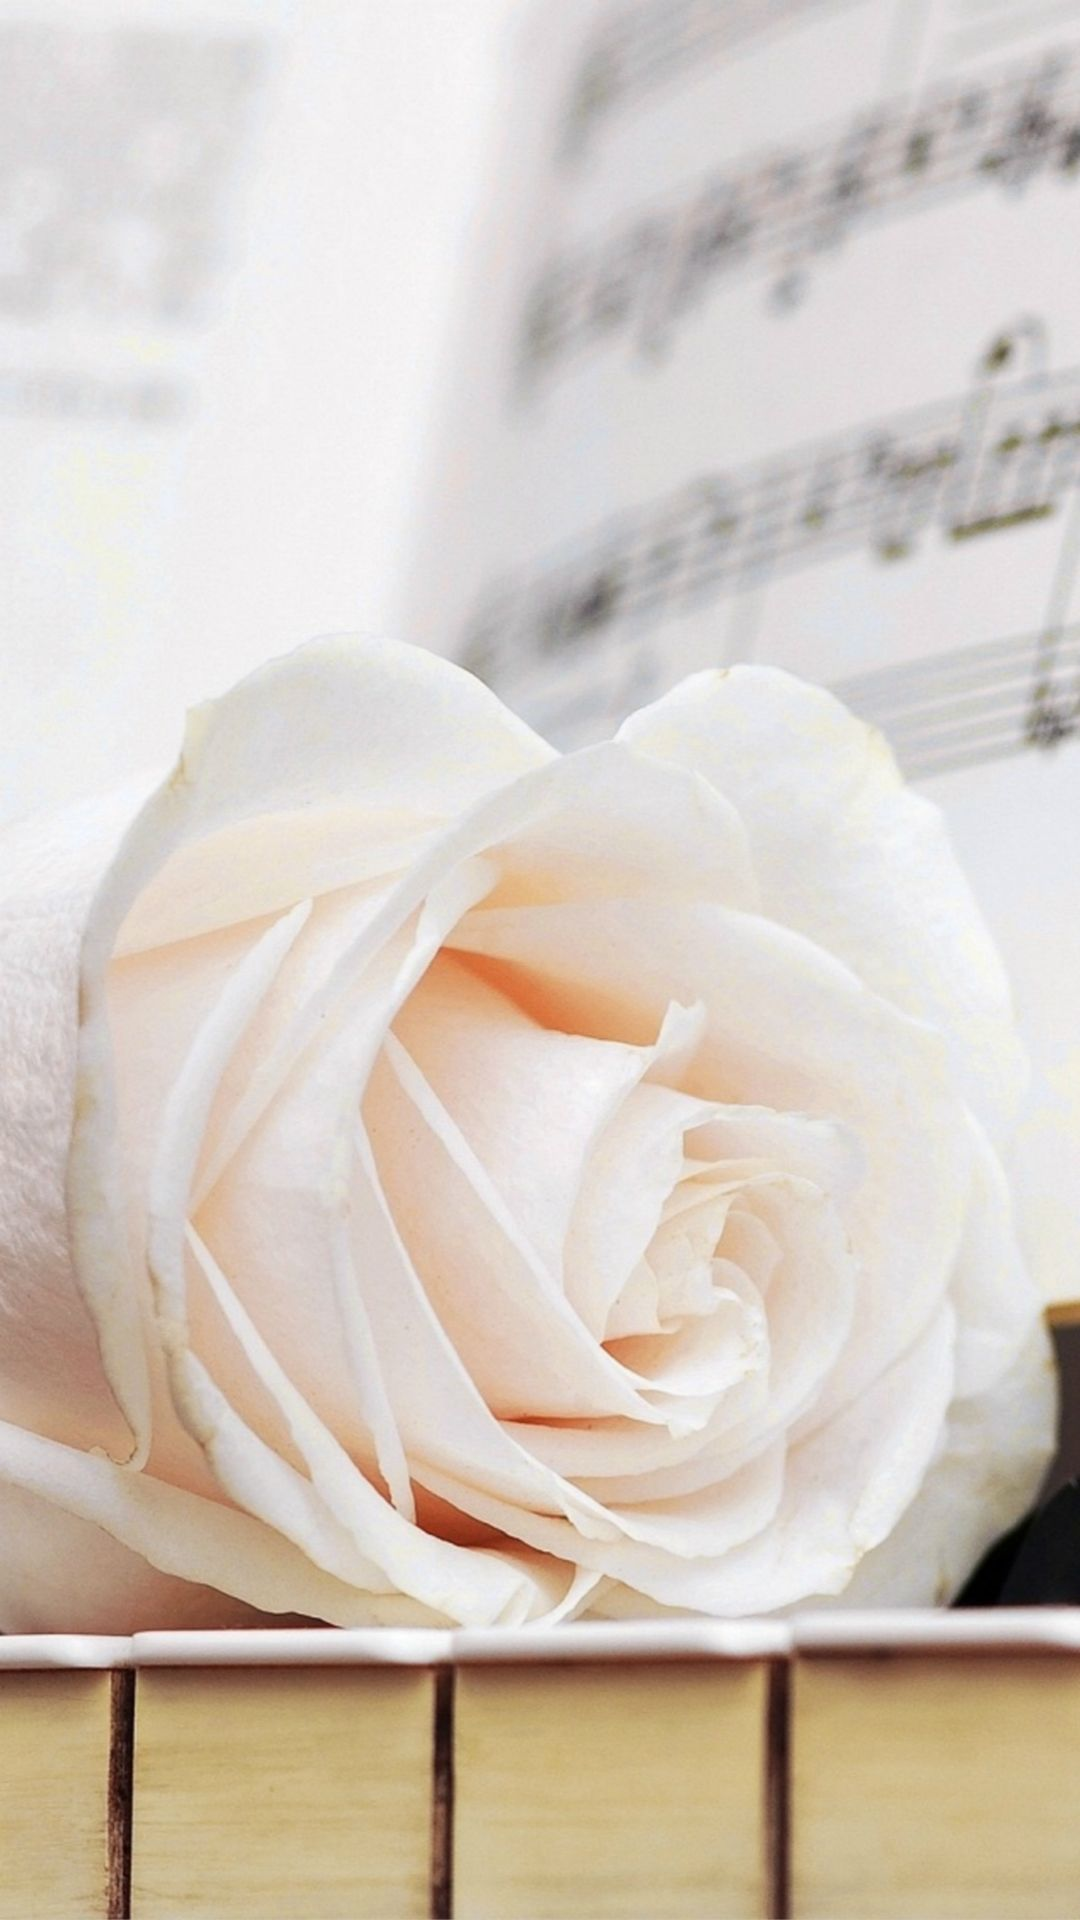 White Rose Iphone Wallpapers Top Free White Rose Iphone Backgrounds Wallpaperaccess